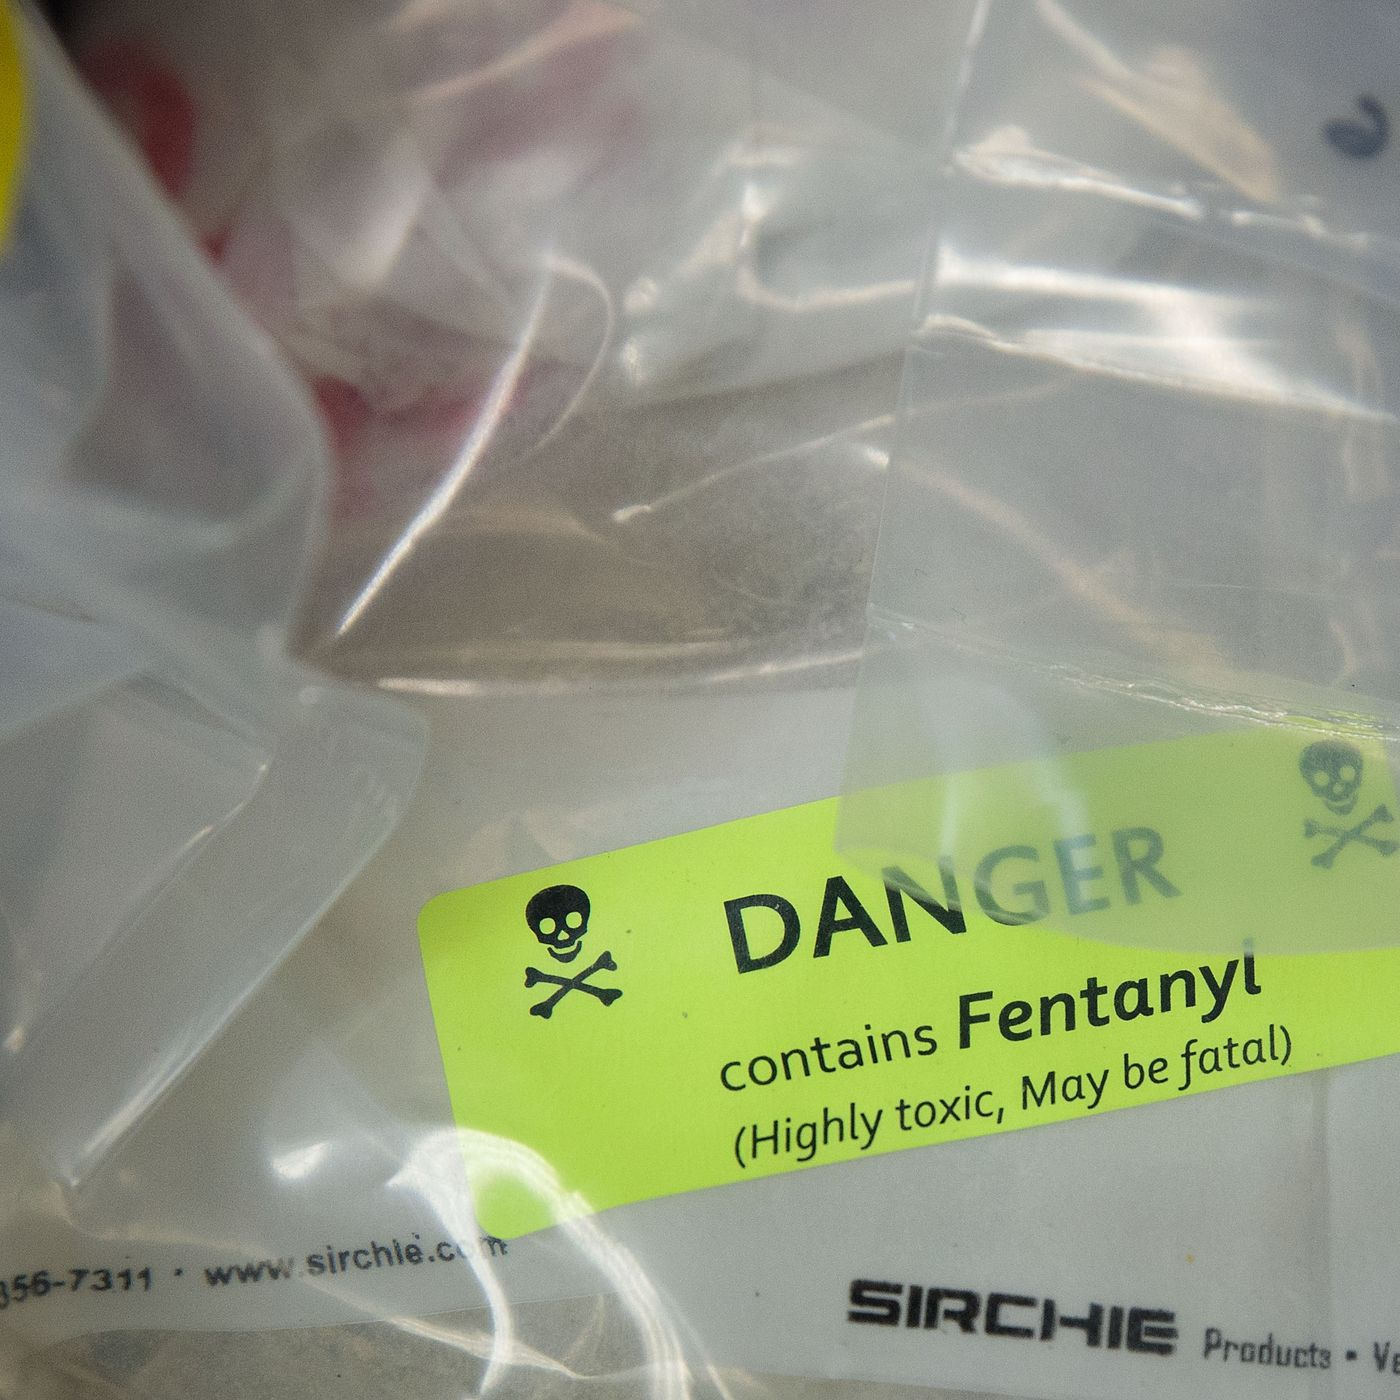 Fentanyl, the latest deadly drug in the opioid epidemic, explained - Vox